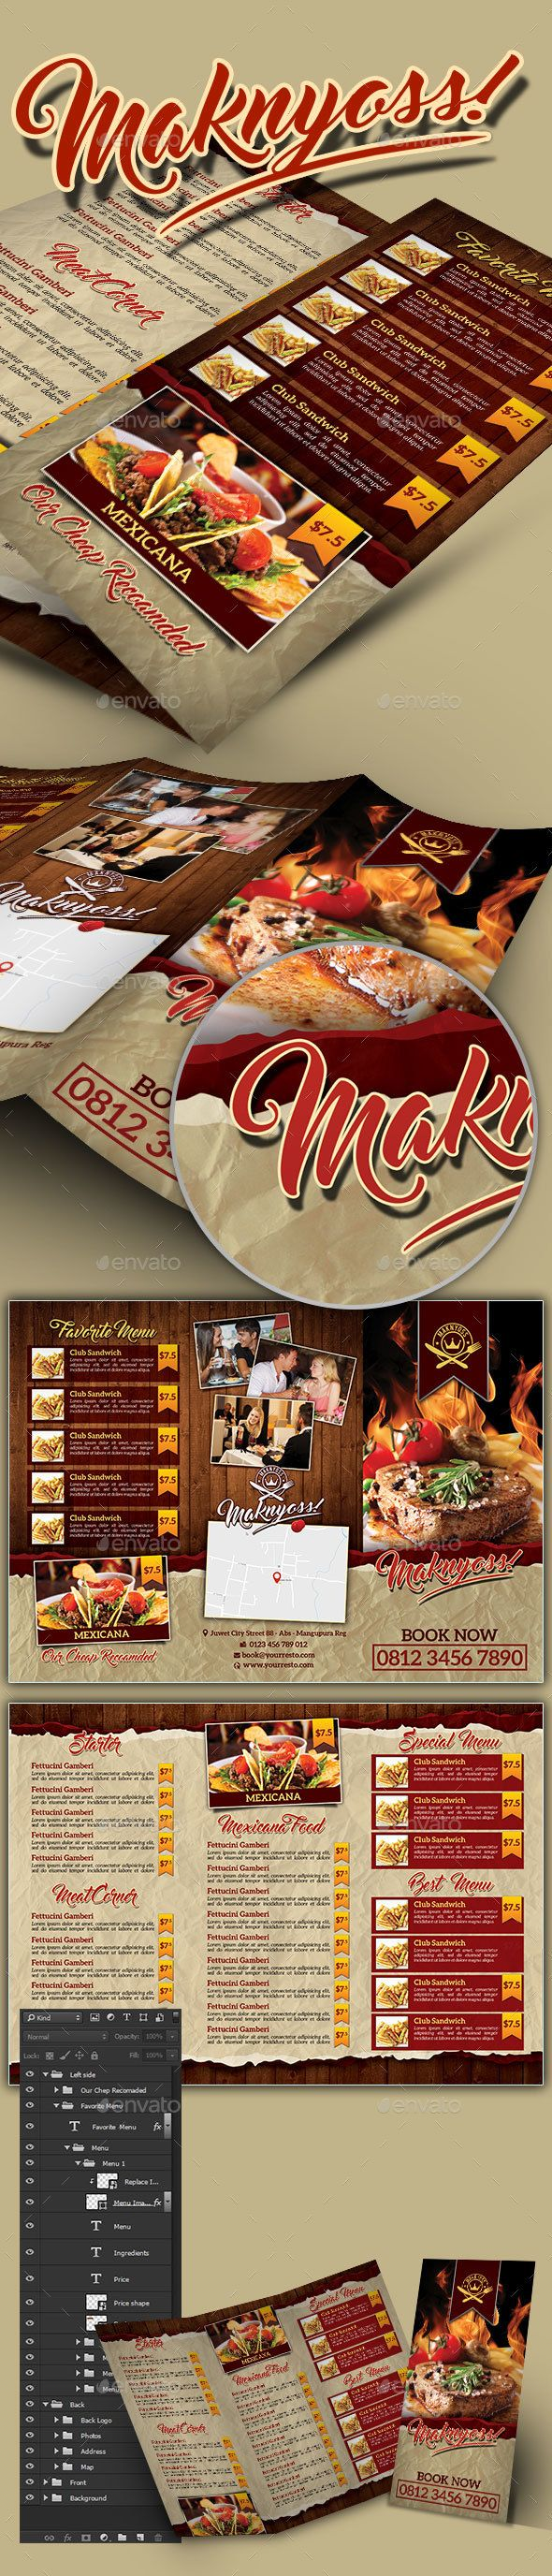 455 best trifold restaurant menu template images on pinterest restaurant menu trifold brochure pronofoot35fo Choice Image